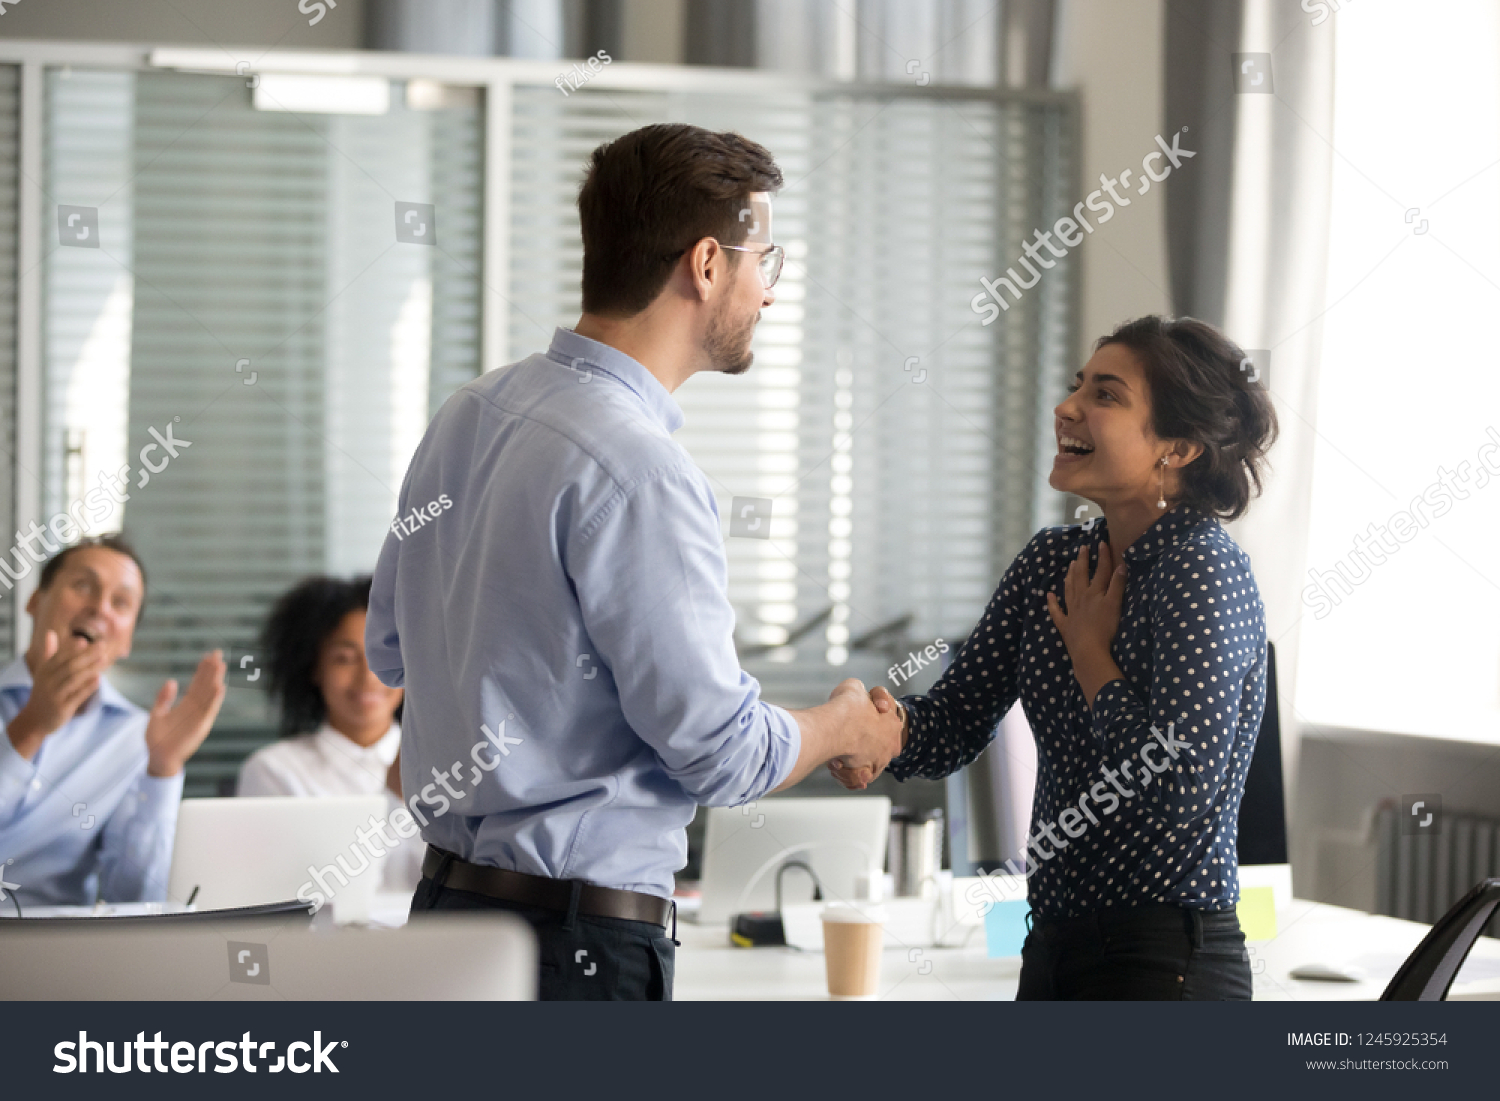 Team leader motivating handshaking female Indian excited employee, congratulate with promotion, business achievement, thank for good result, work, expressing respect, support, colleagues applaud #1245925354